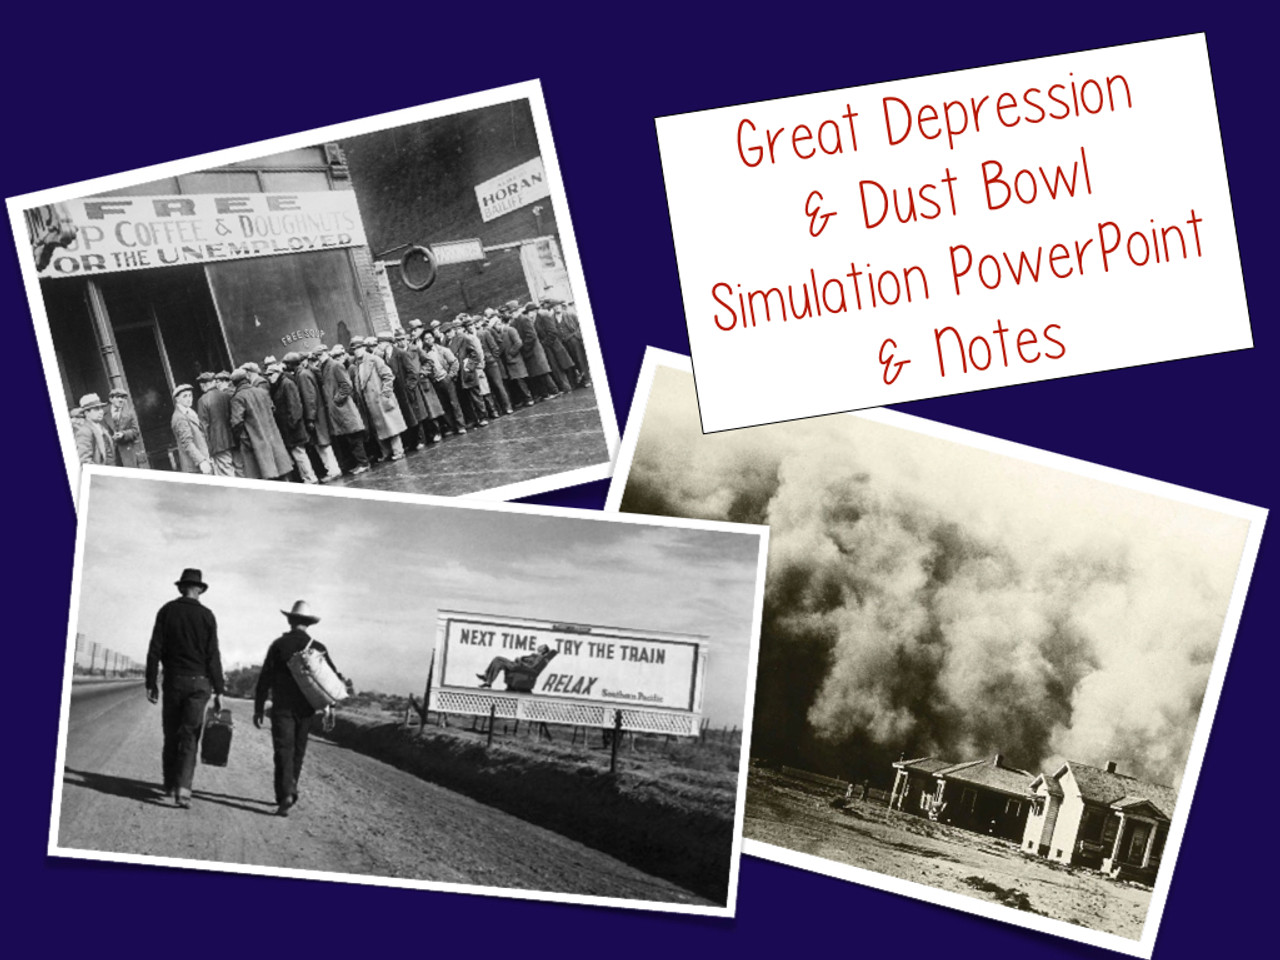 Great Depression/Dust Bowl Simulation Powerpoint and Notes Activity